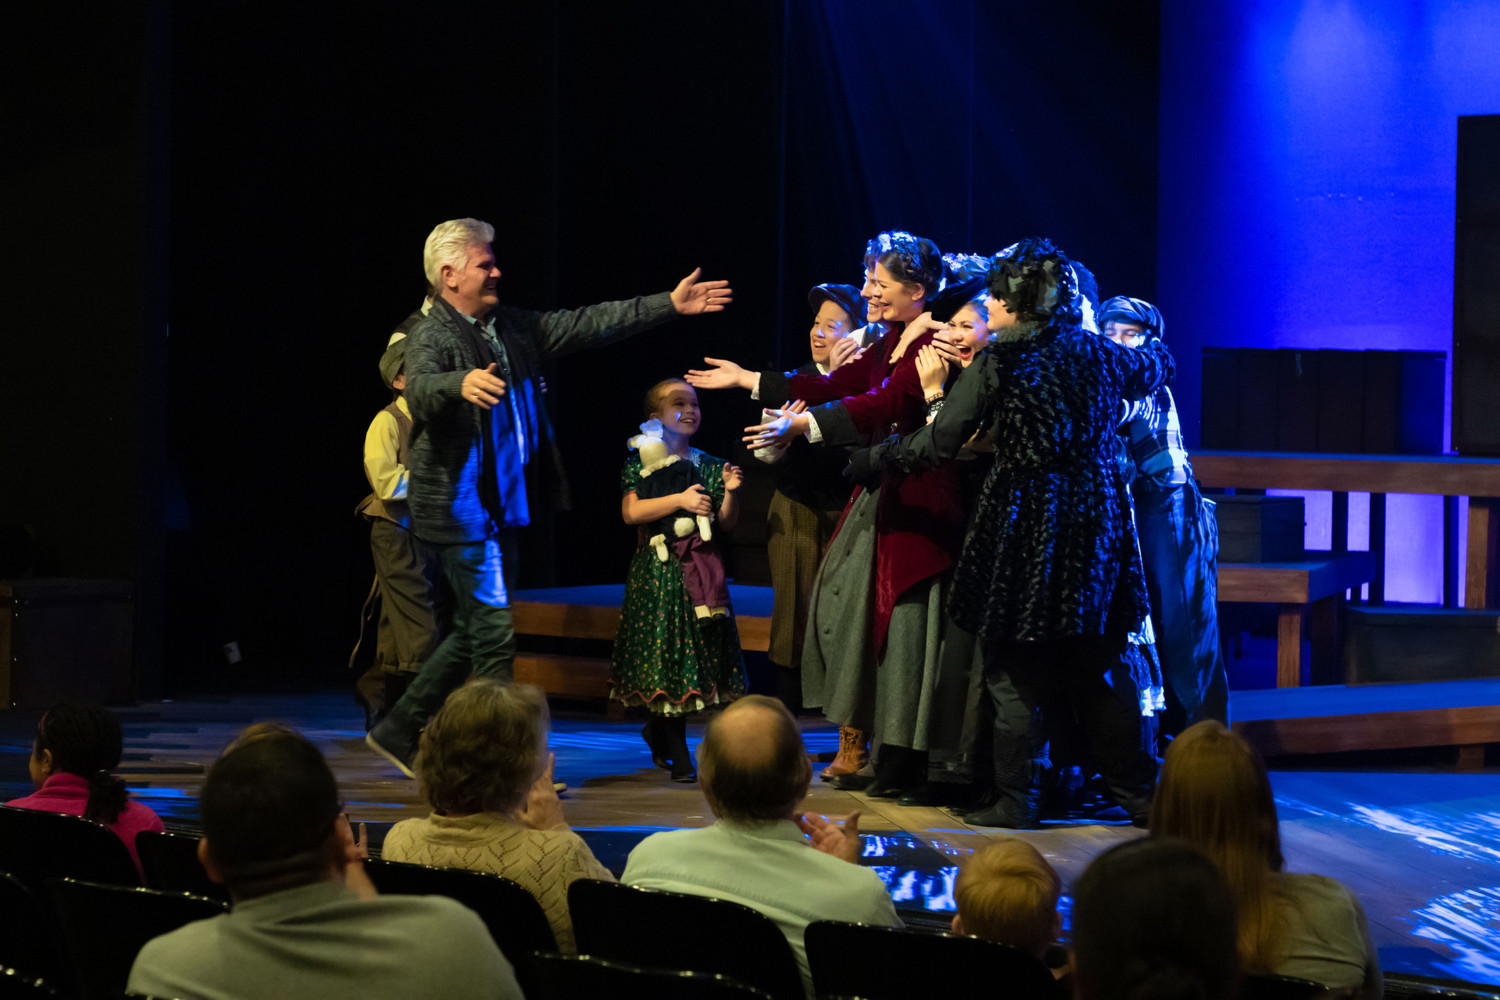 BWW Review: THE MIRACULOUS JOURNEY OF EDWARD TULANE Inspires Young Minds at Valley Youth Theatre